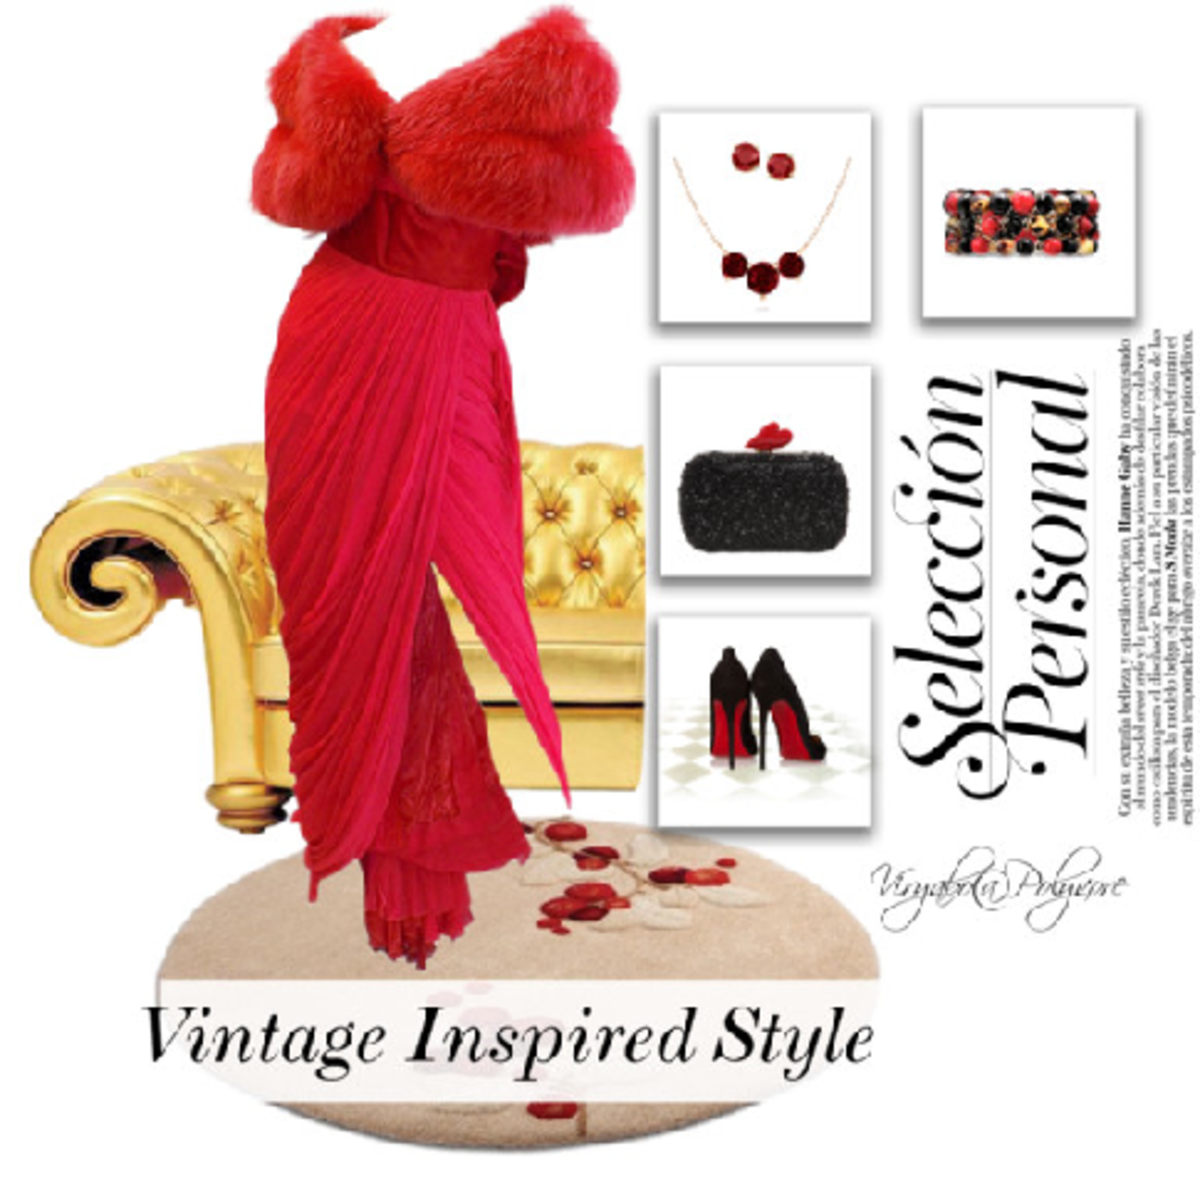 Vintage Inspired Style, a Modern Fashion Signature